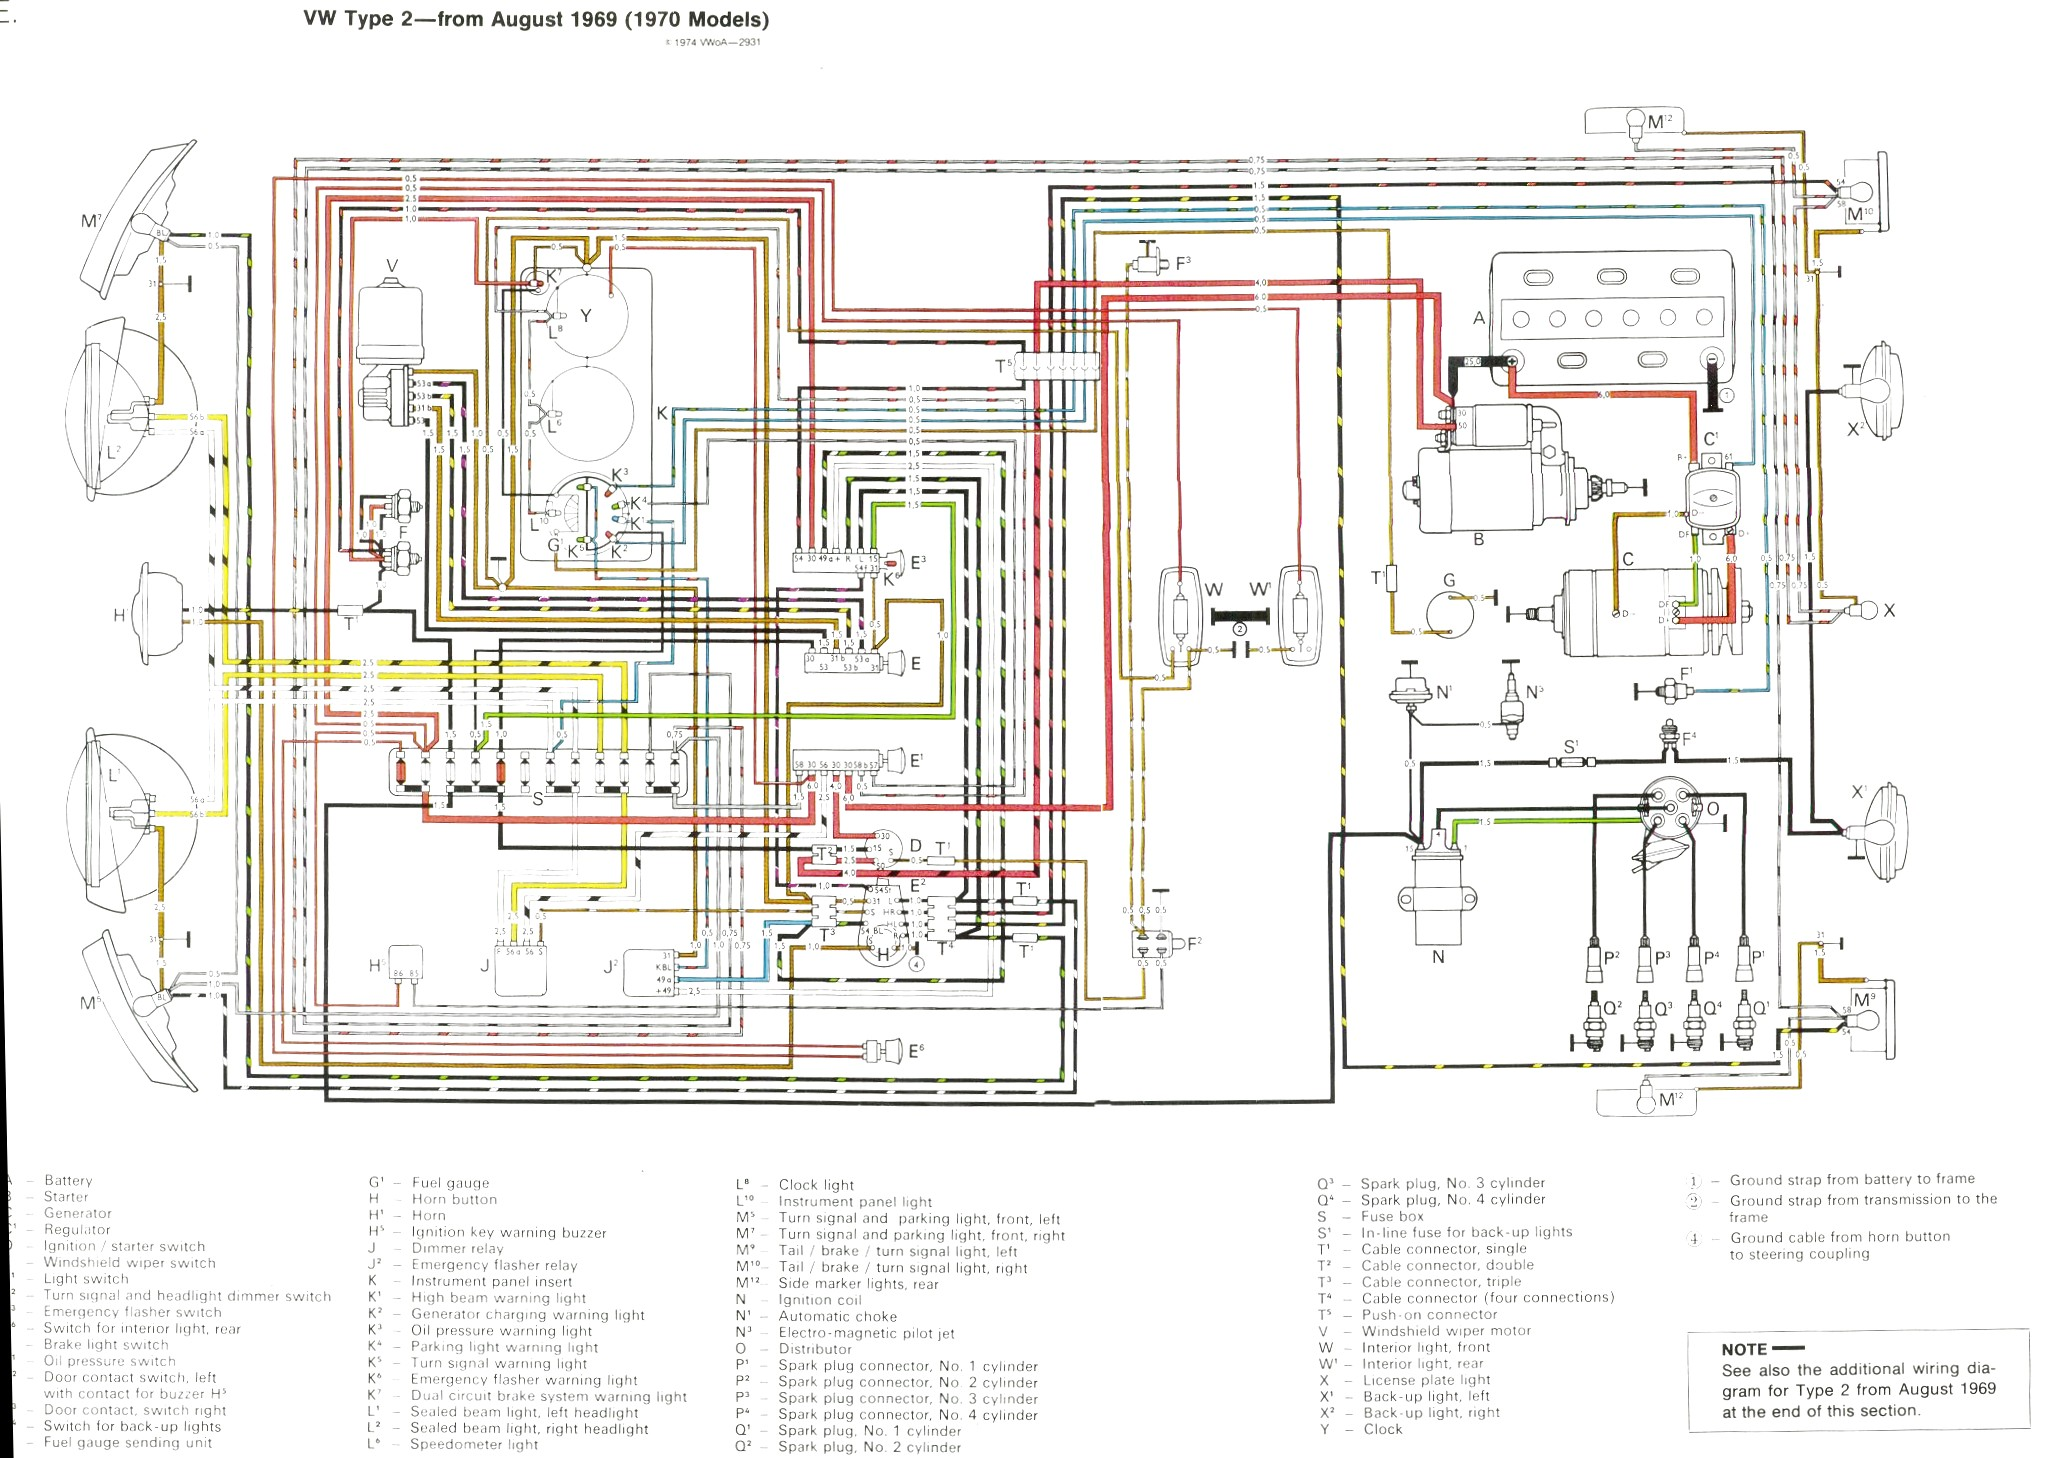 bus 69 70 vintagebus com vw bus (and other) wiring diagrams 1969 vw squareback wiring diagram at webbmarketing.co